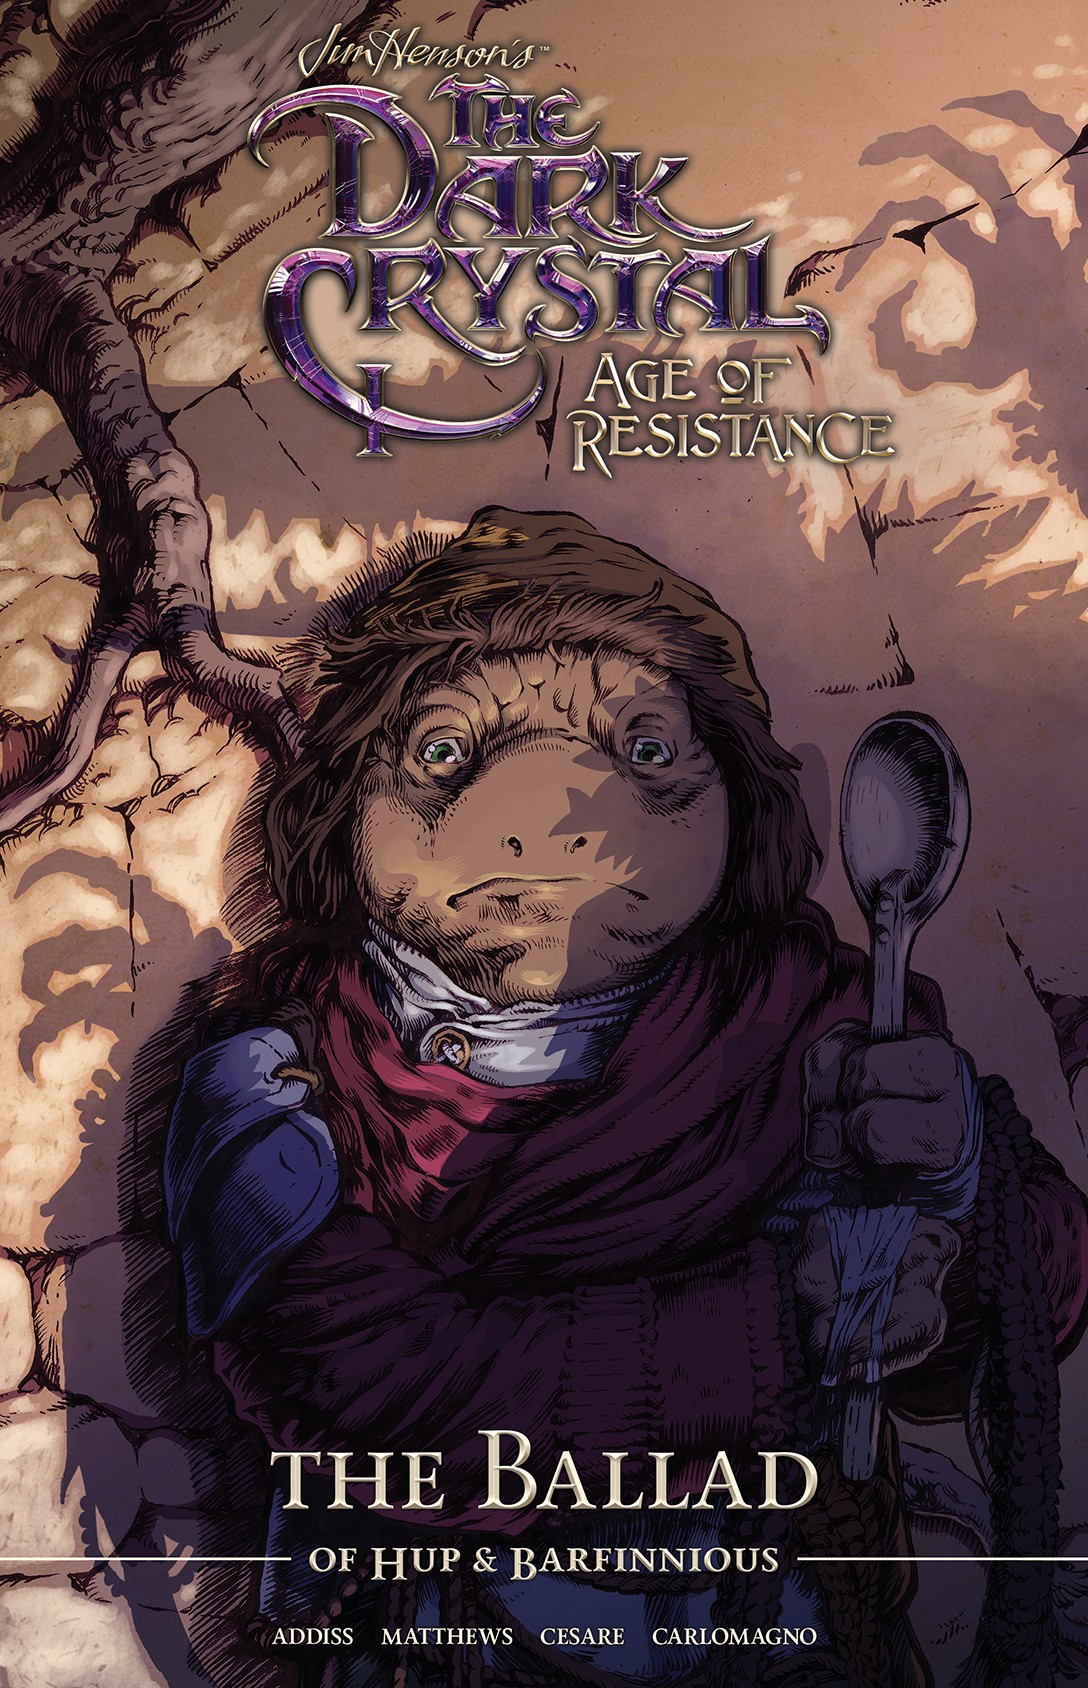 Preview: Jim Henson's the Dark Crystal Age of Resistance Vol. 2 the Ballad of Hup & Barfinnious | Graphic Policy